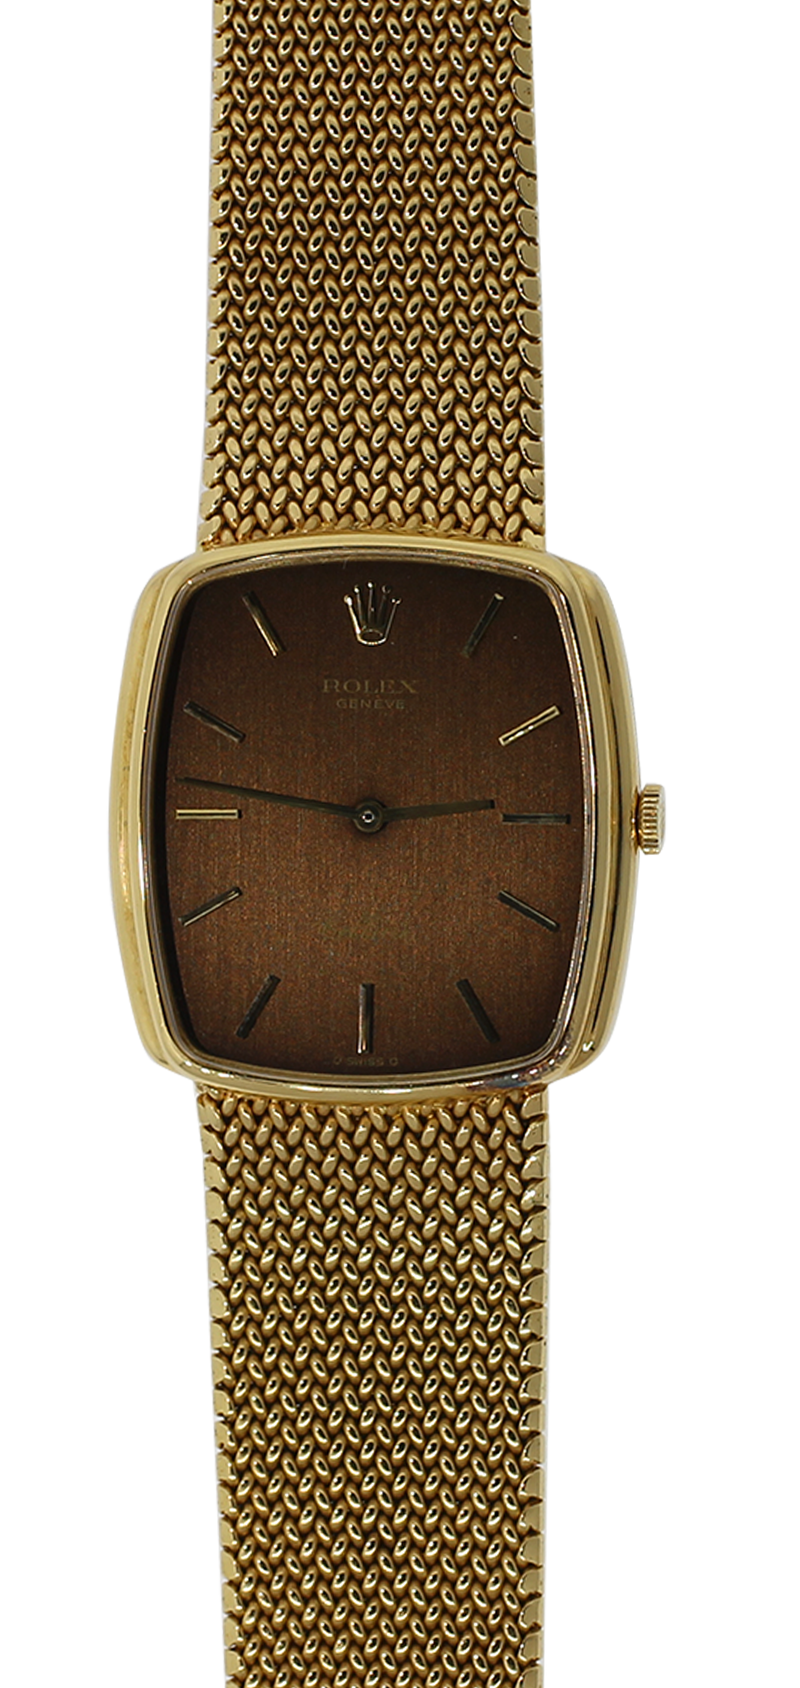 Vintage Rolex 18k Yellow Gold Cellini on Mesh Bracelet Complete with Box & Paper